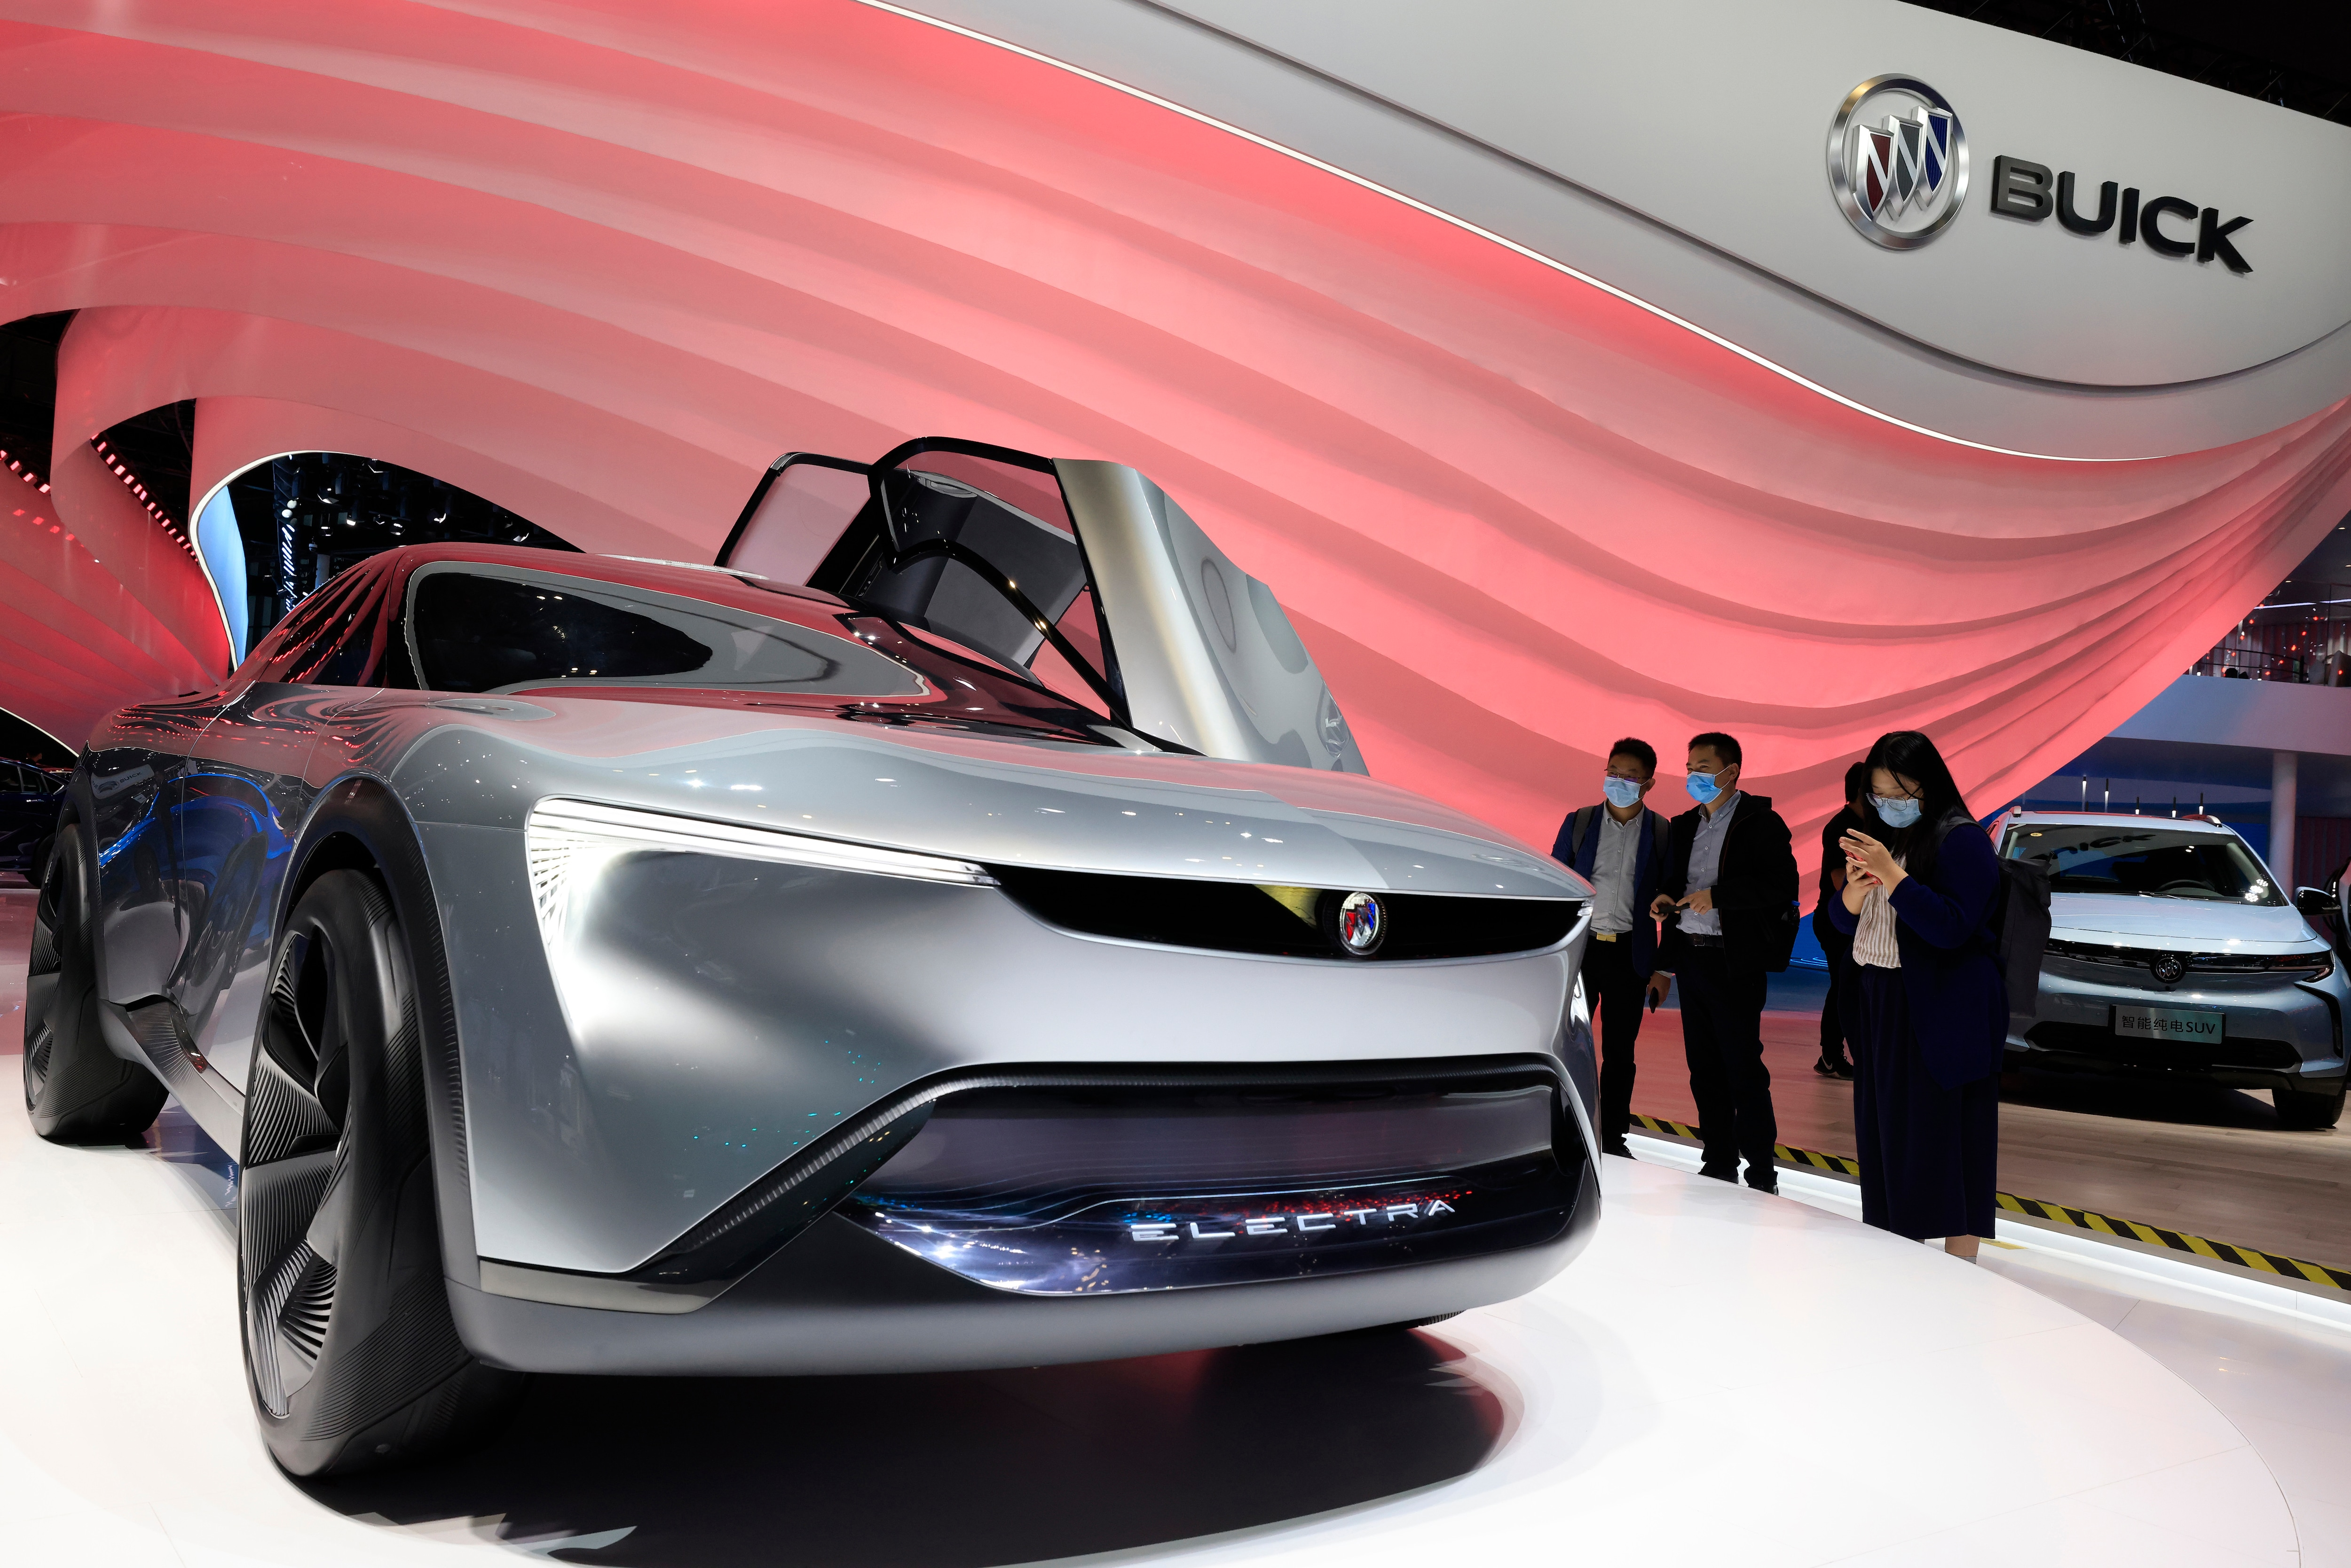 The Electra concept car from Buick has been put on display. Visitors look at the concept vehicle at the Buick booth. (AP)